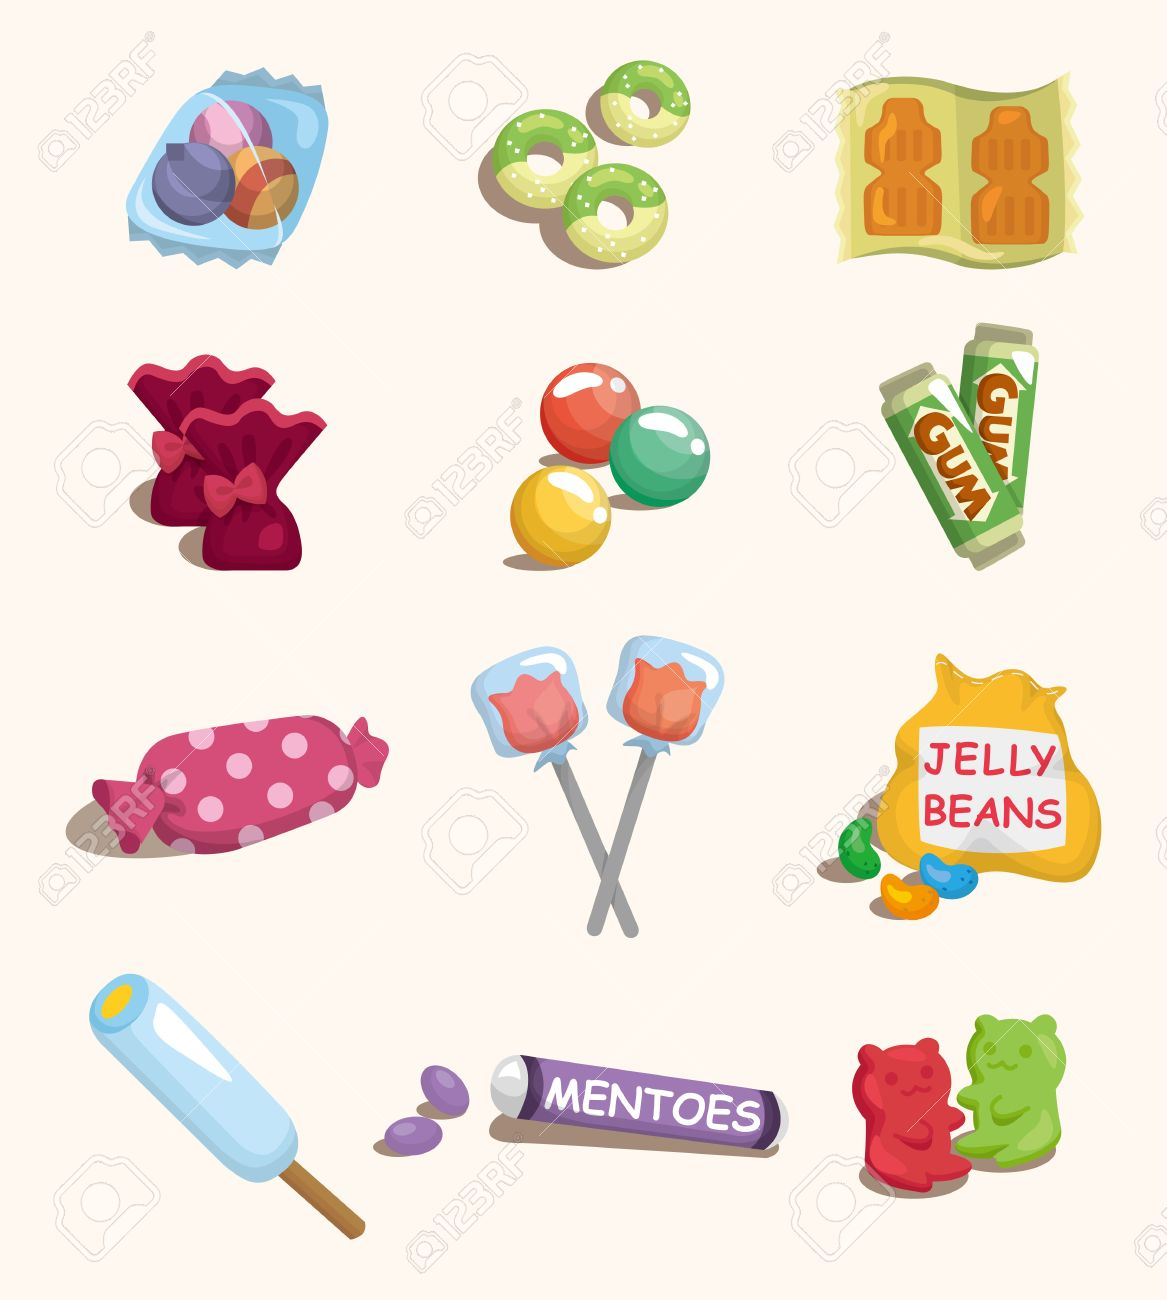 cartoon candy icon royalty free cliparts vectors and stock